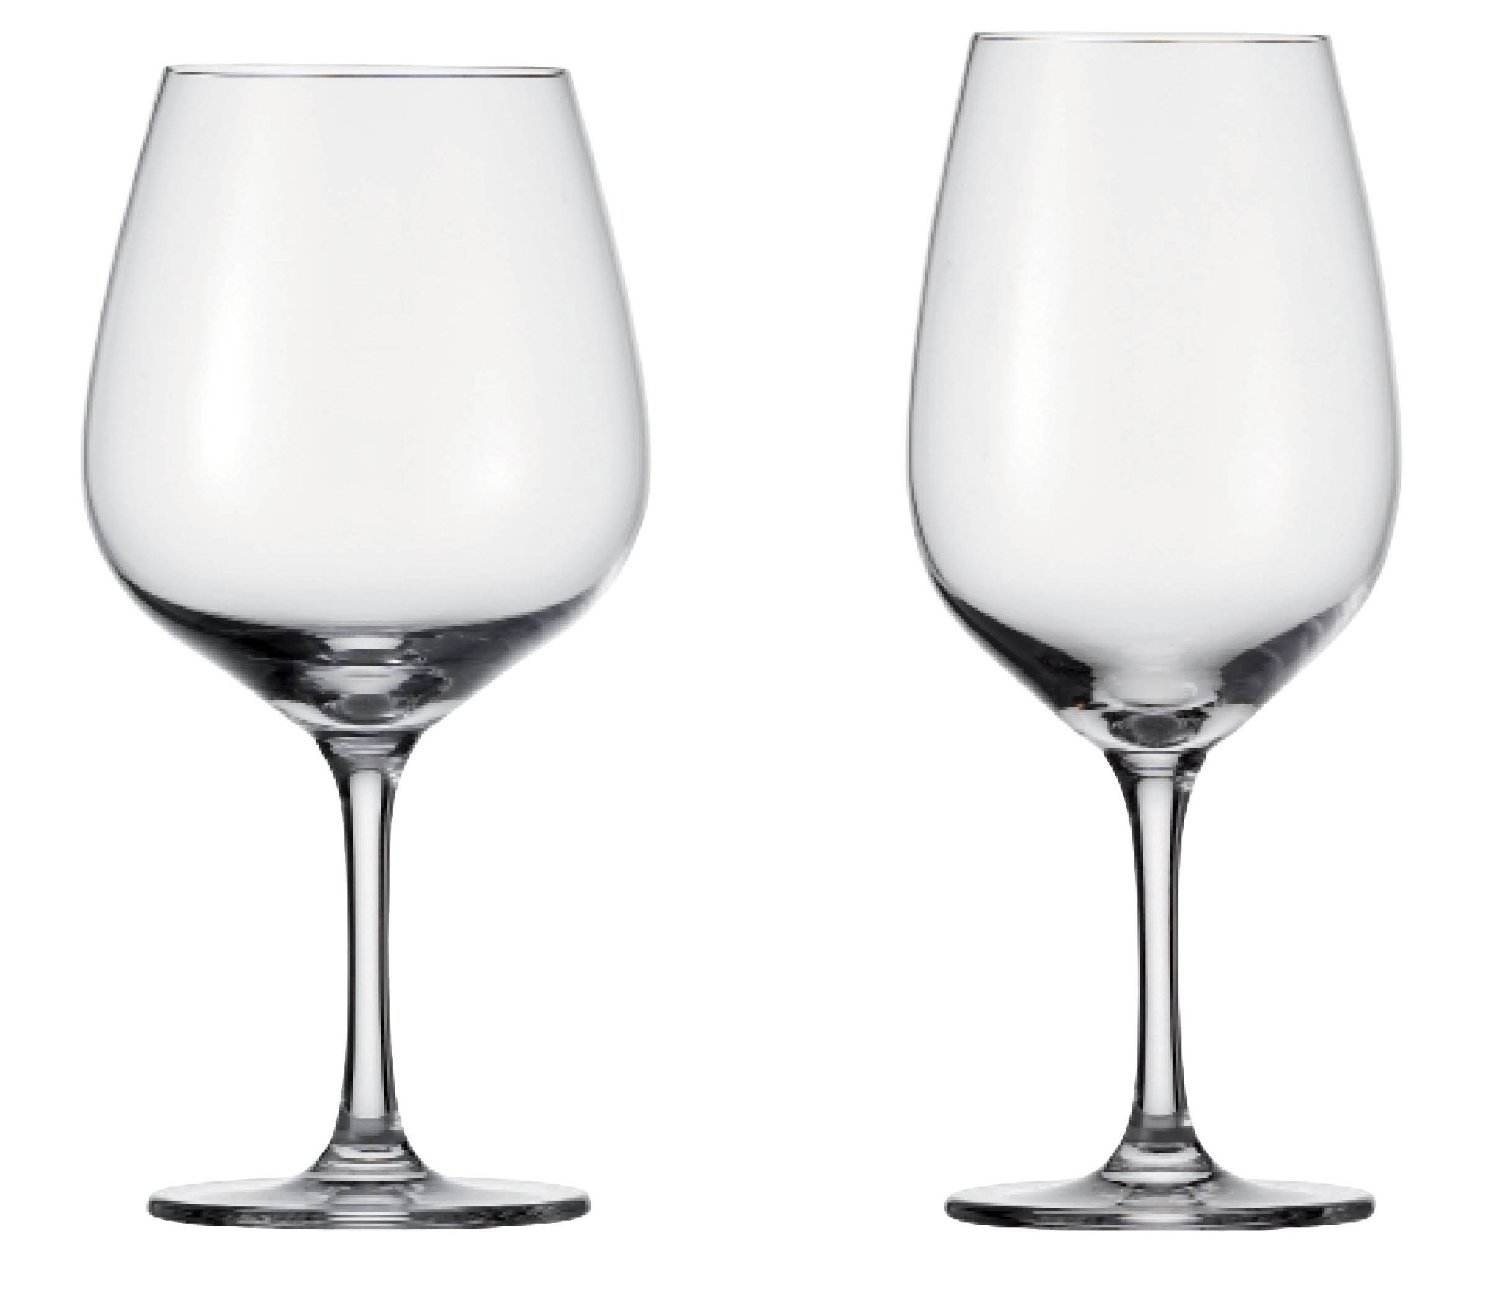 Schott Zwiesel Wine Glasses | Fortessa Tableware Solutions | German Crystal Stemware